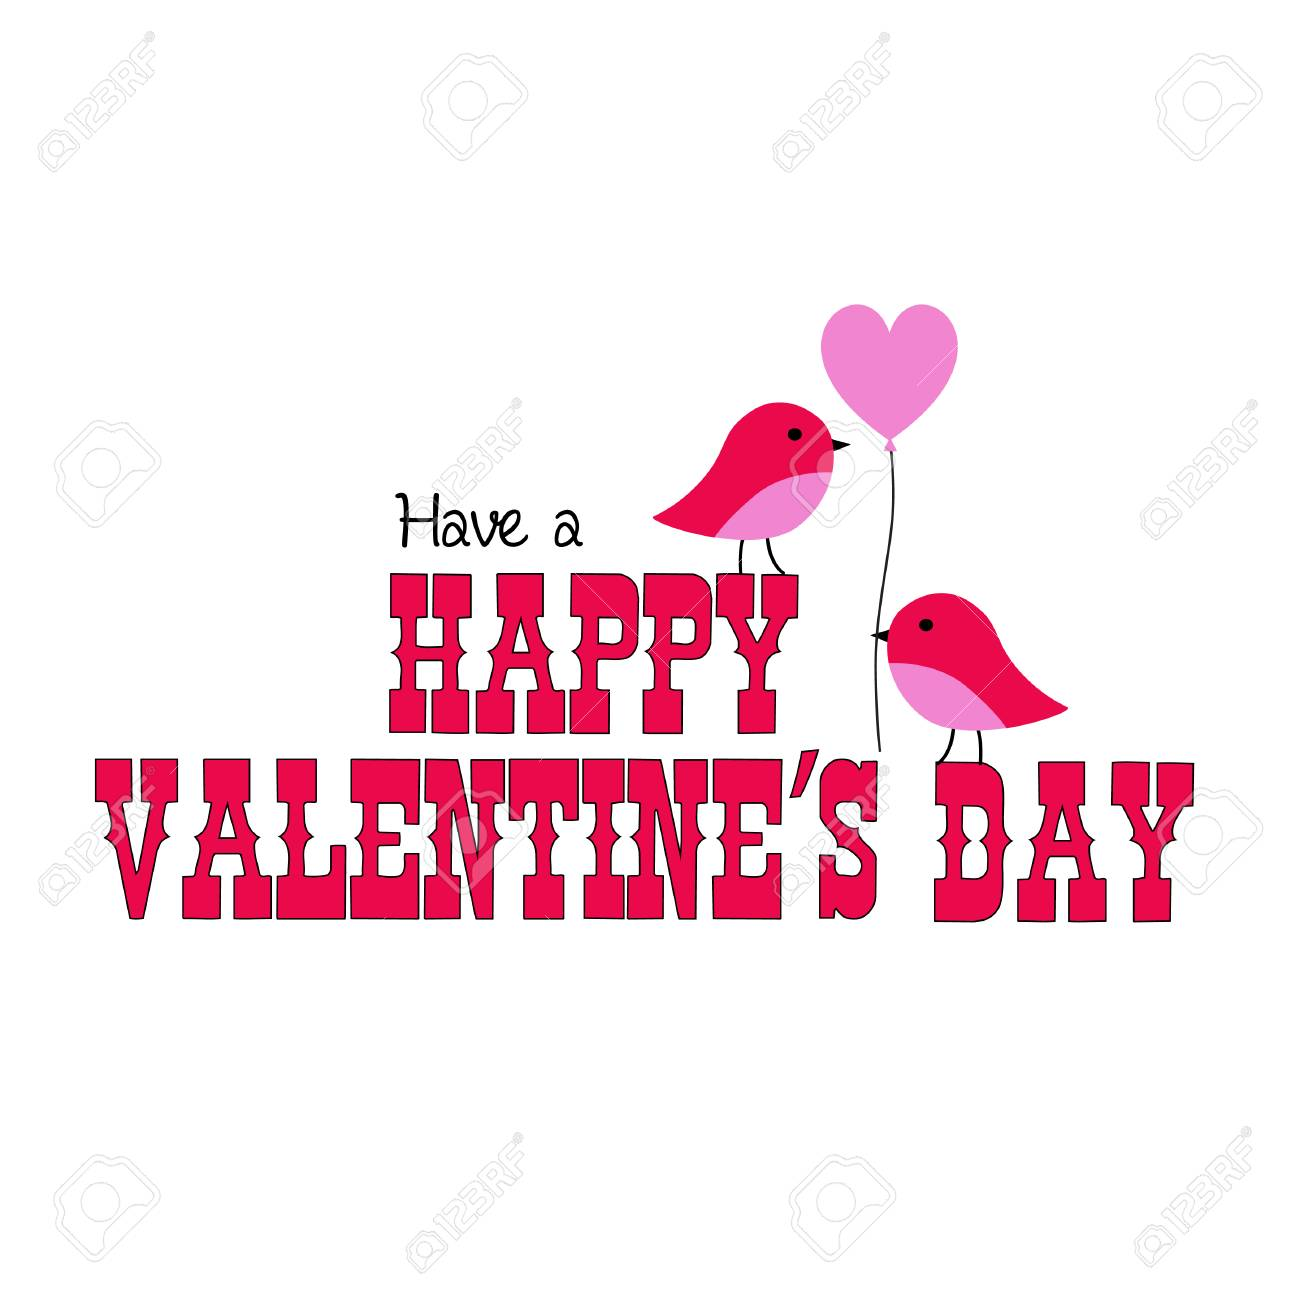 valentines day graphic with cute birds and balloon - 94075479